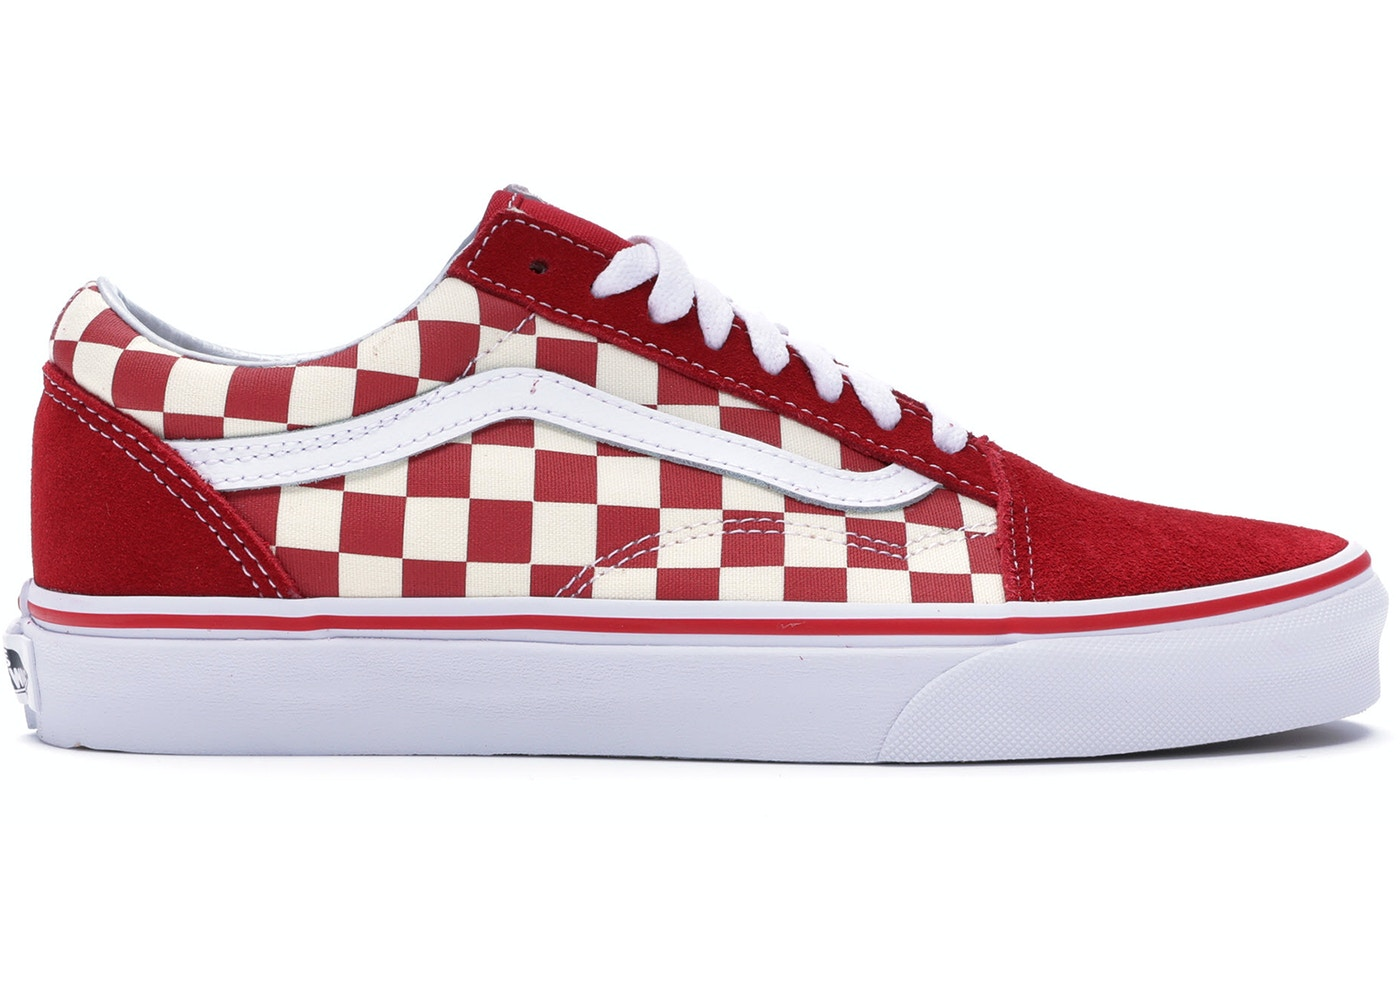 14bc1afa089f47 Vans Footwear - Buy Deadstock Sneakers